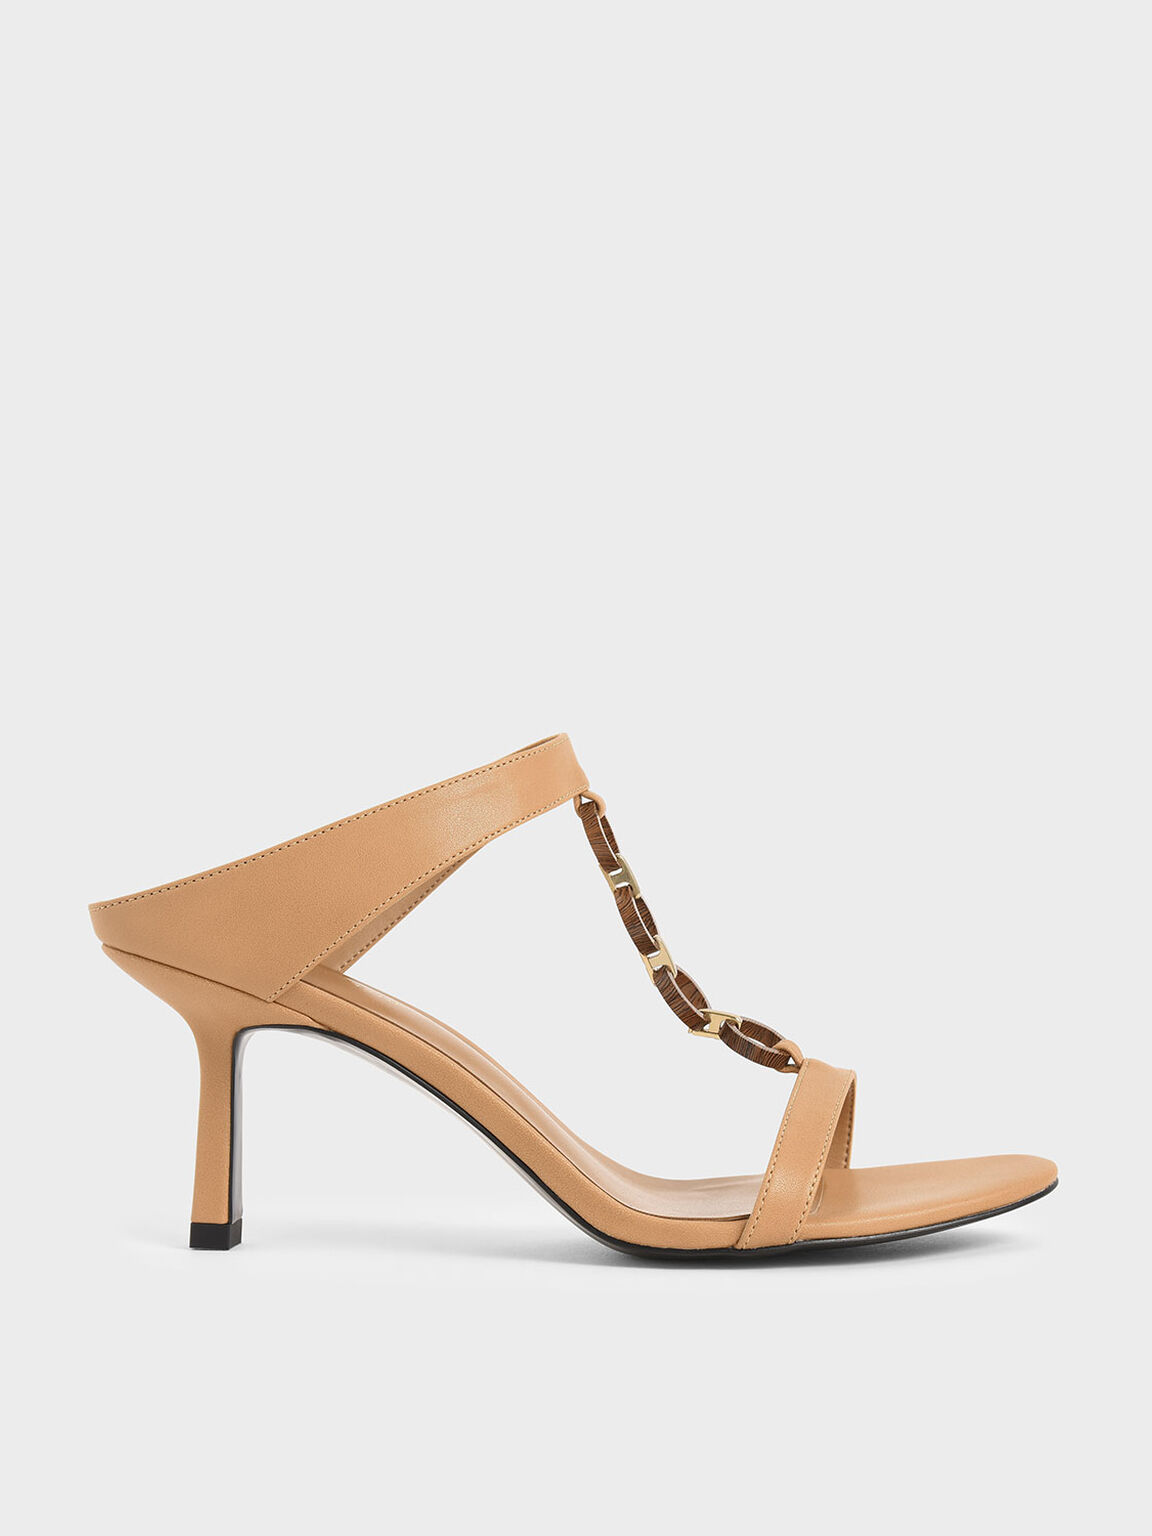 Wood-Effect Chain Link Mules, Nude, hi-res